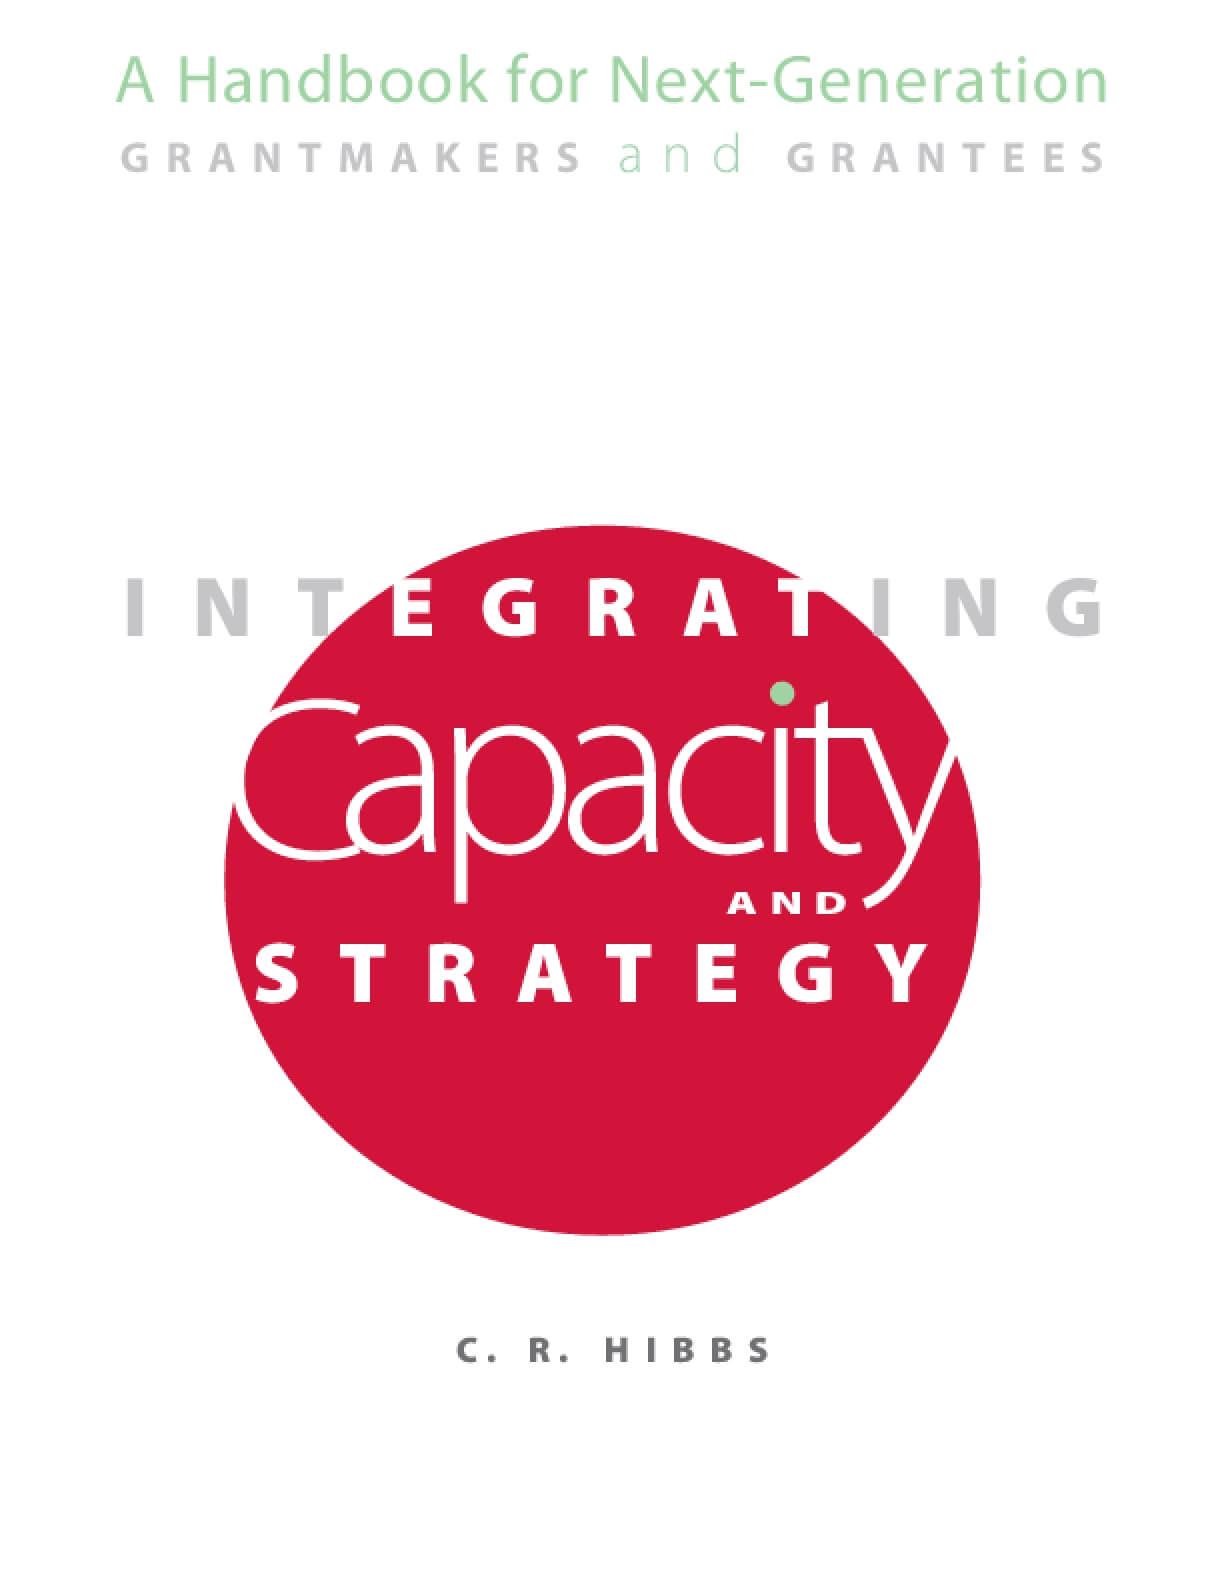 Integrating Capacity and Strategy: A Handbook for Next-Generation Grantmakers and Grantees